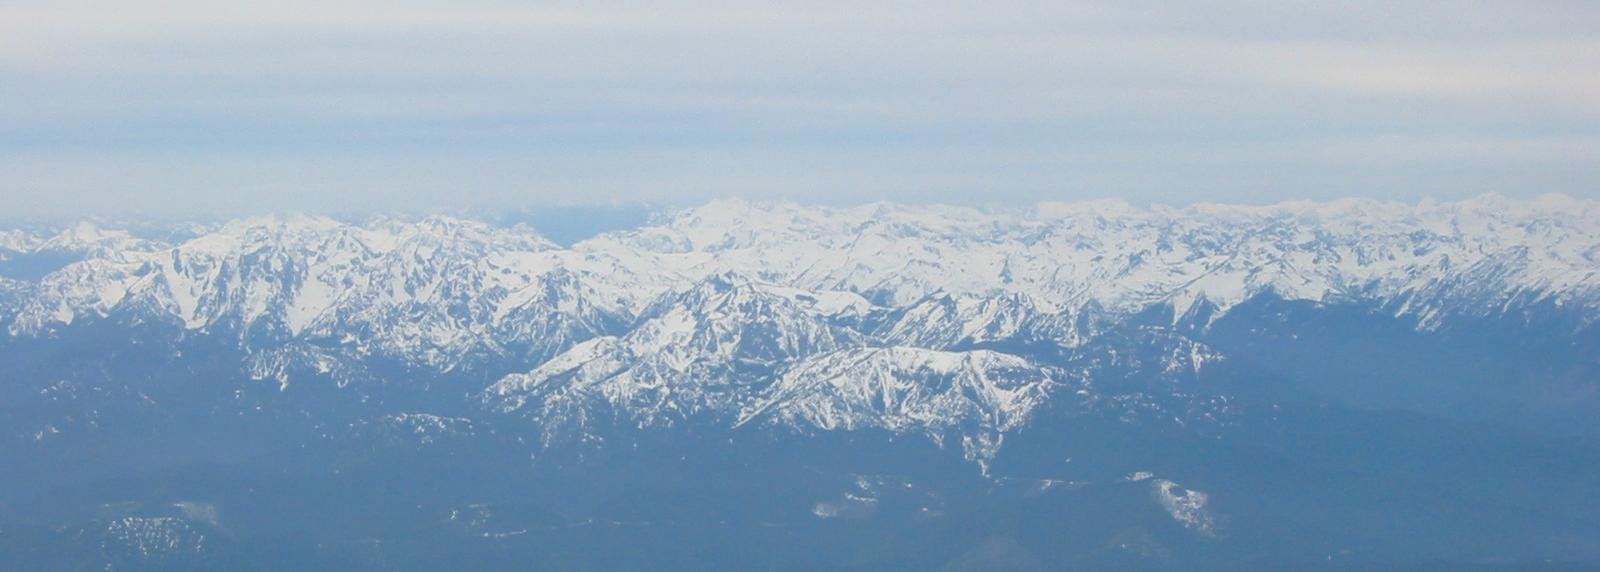 Cascades from an airplane